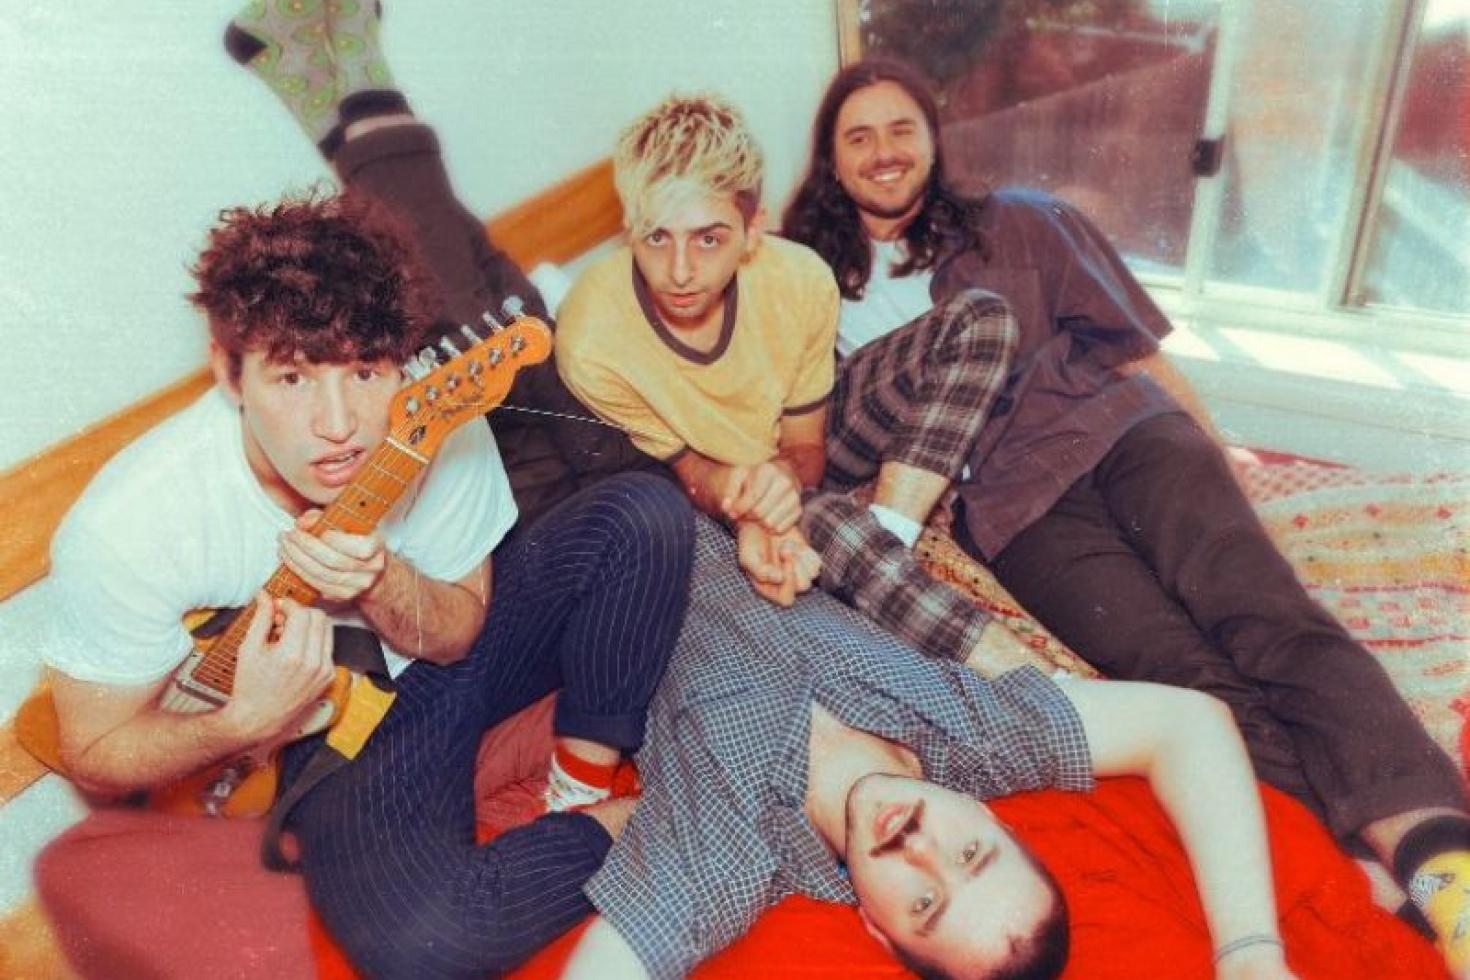 Bakers Eddy celebrate their inner-introvert in new single 'On My Own'